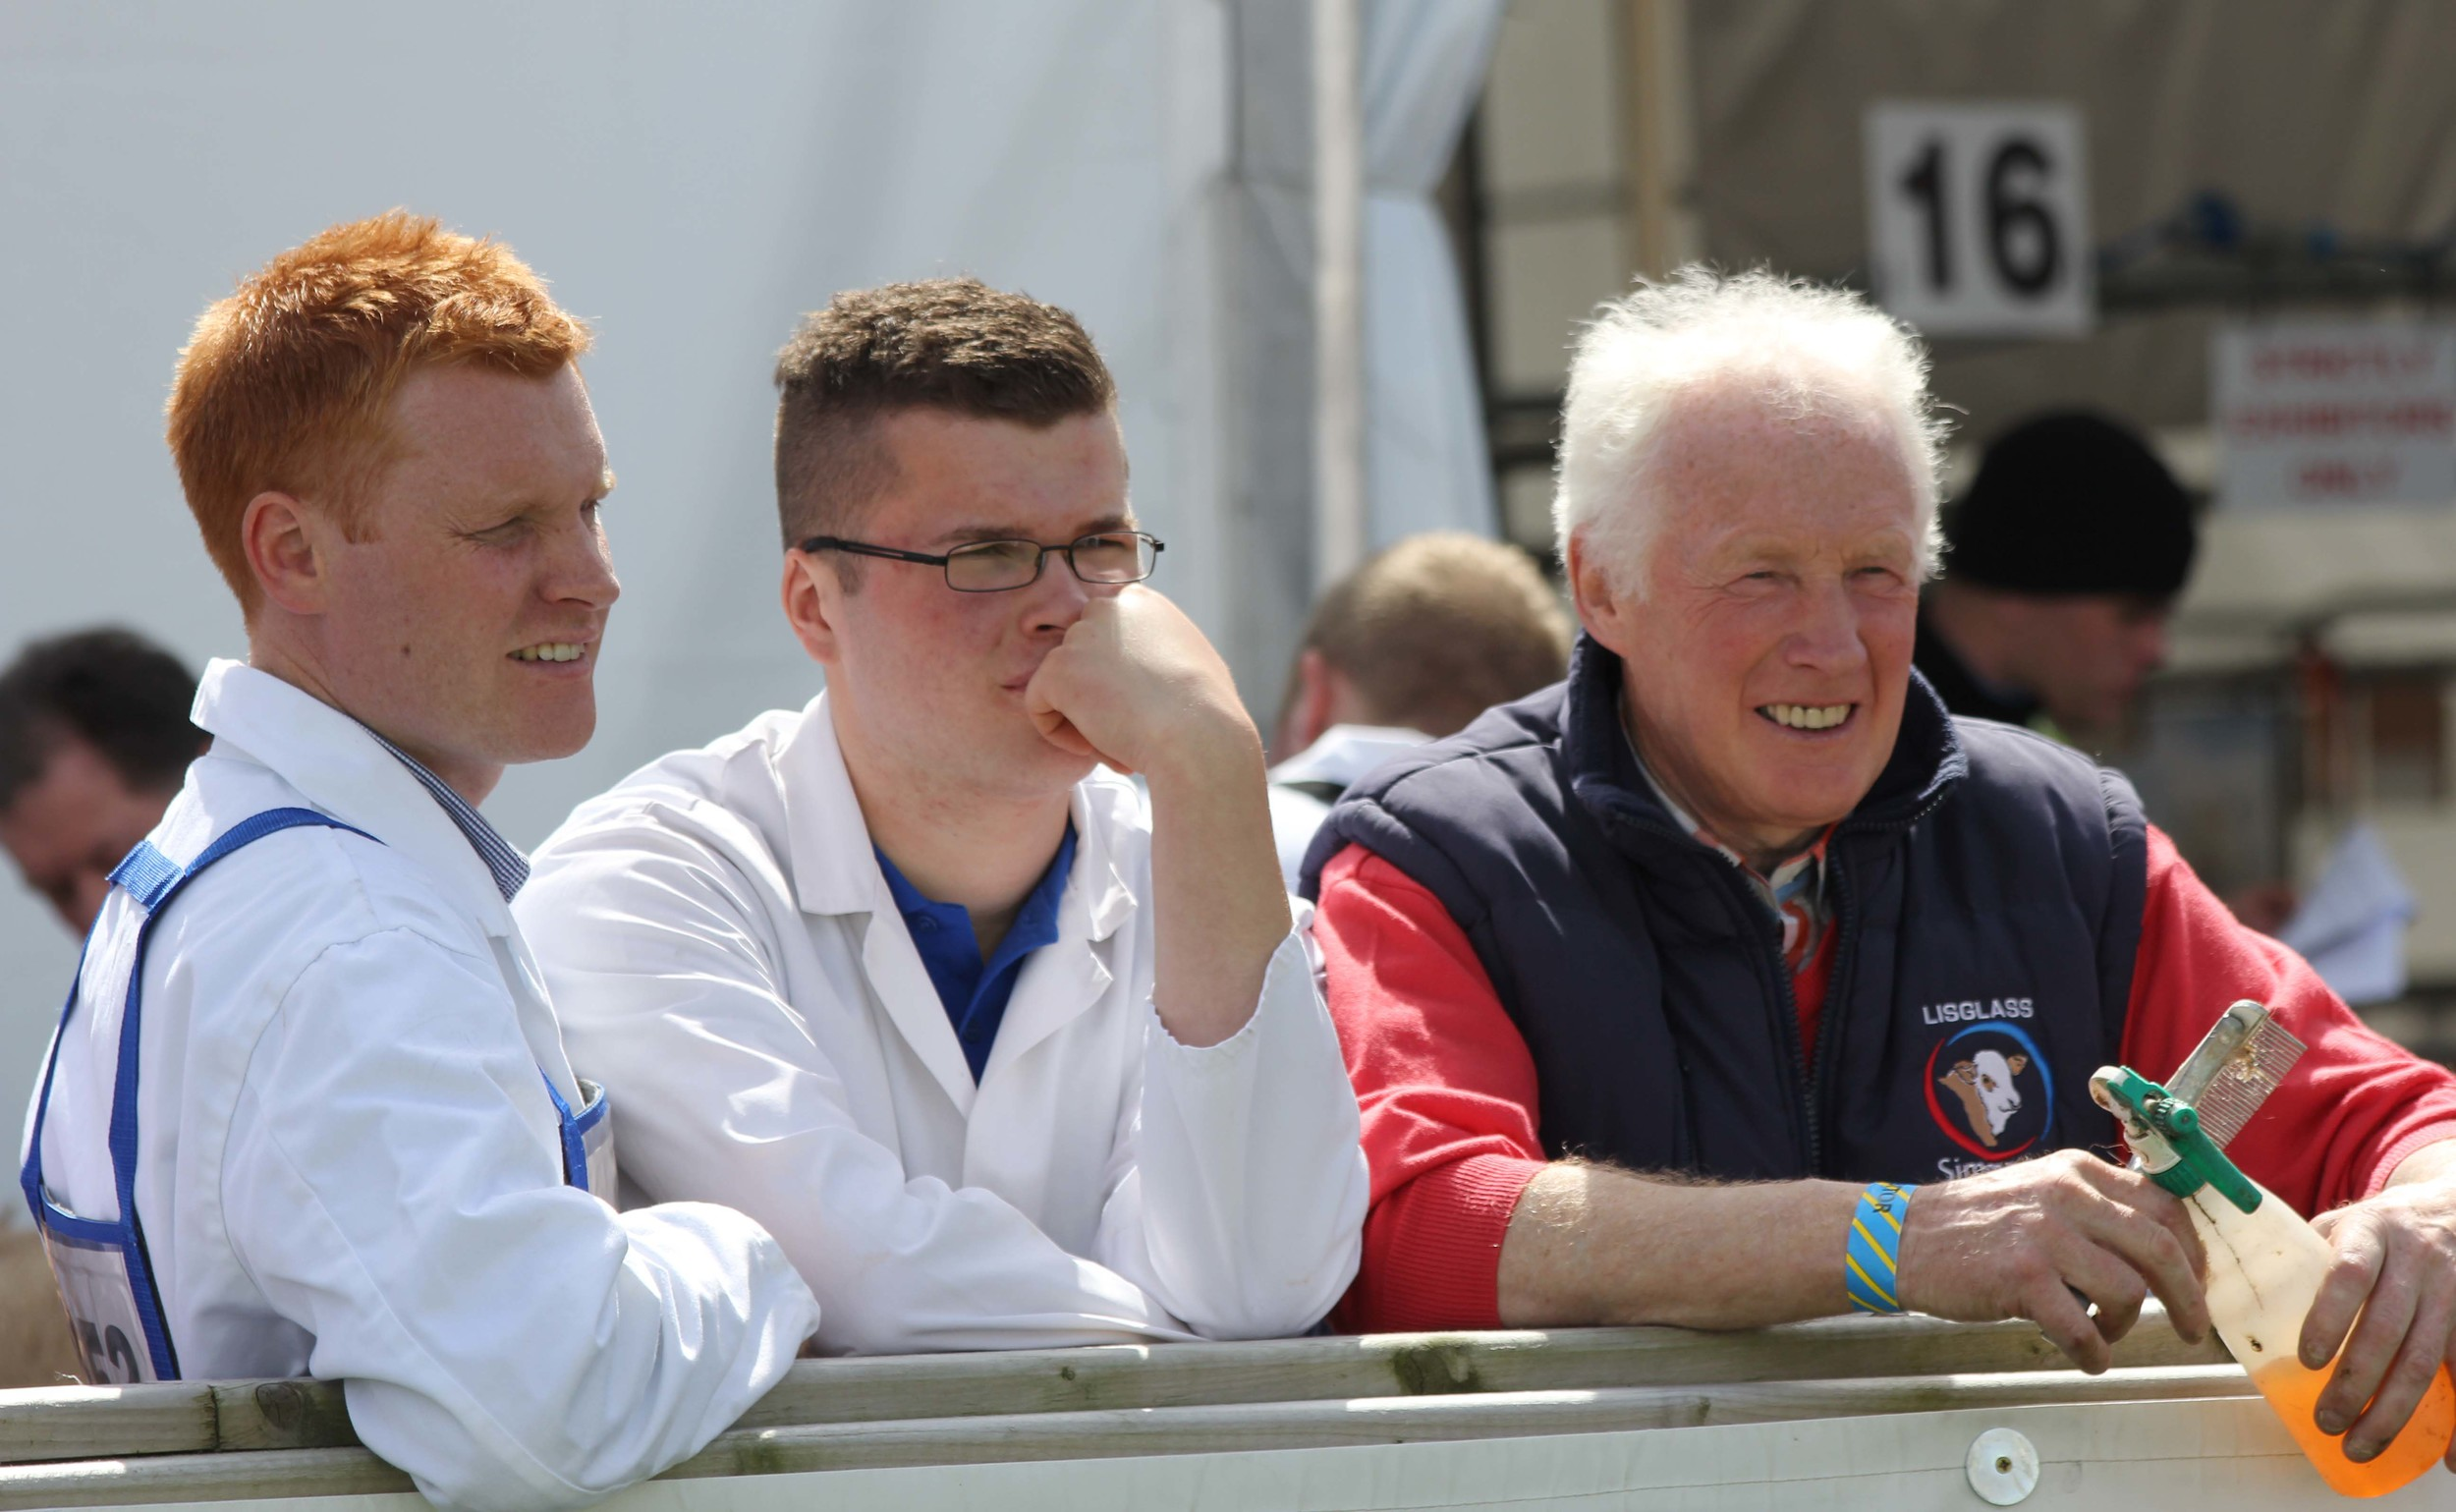 Deep in concentration during the Simmental judging at Balmoral Show are Christopher, James and Leslie Weatherup, Ballyclare.